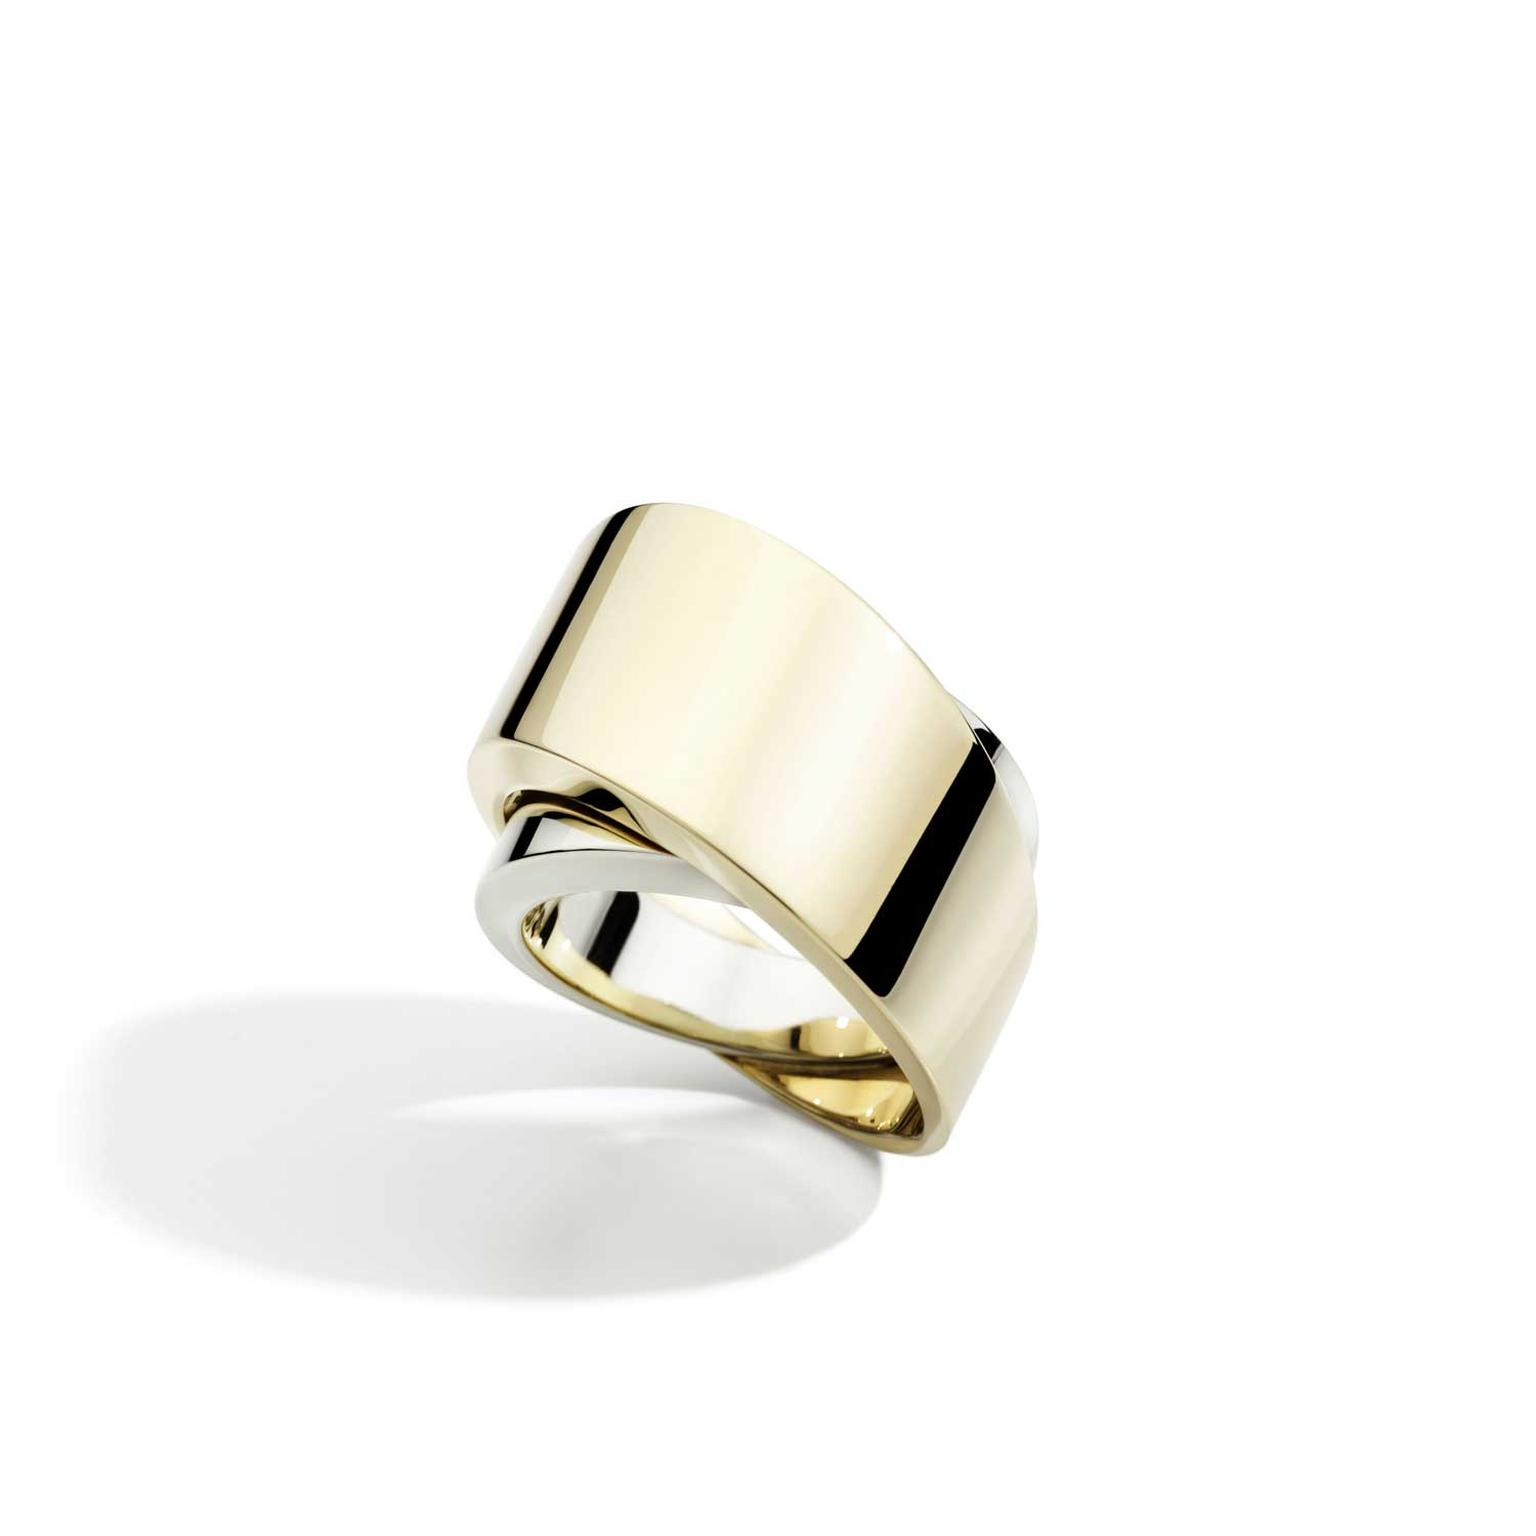 Vhernier Toubillon ring